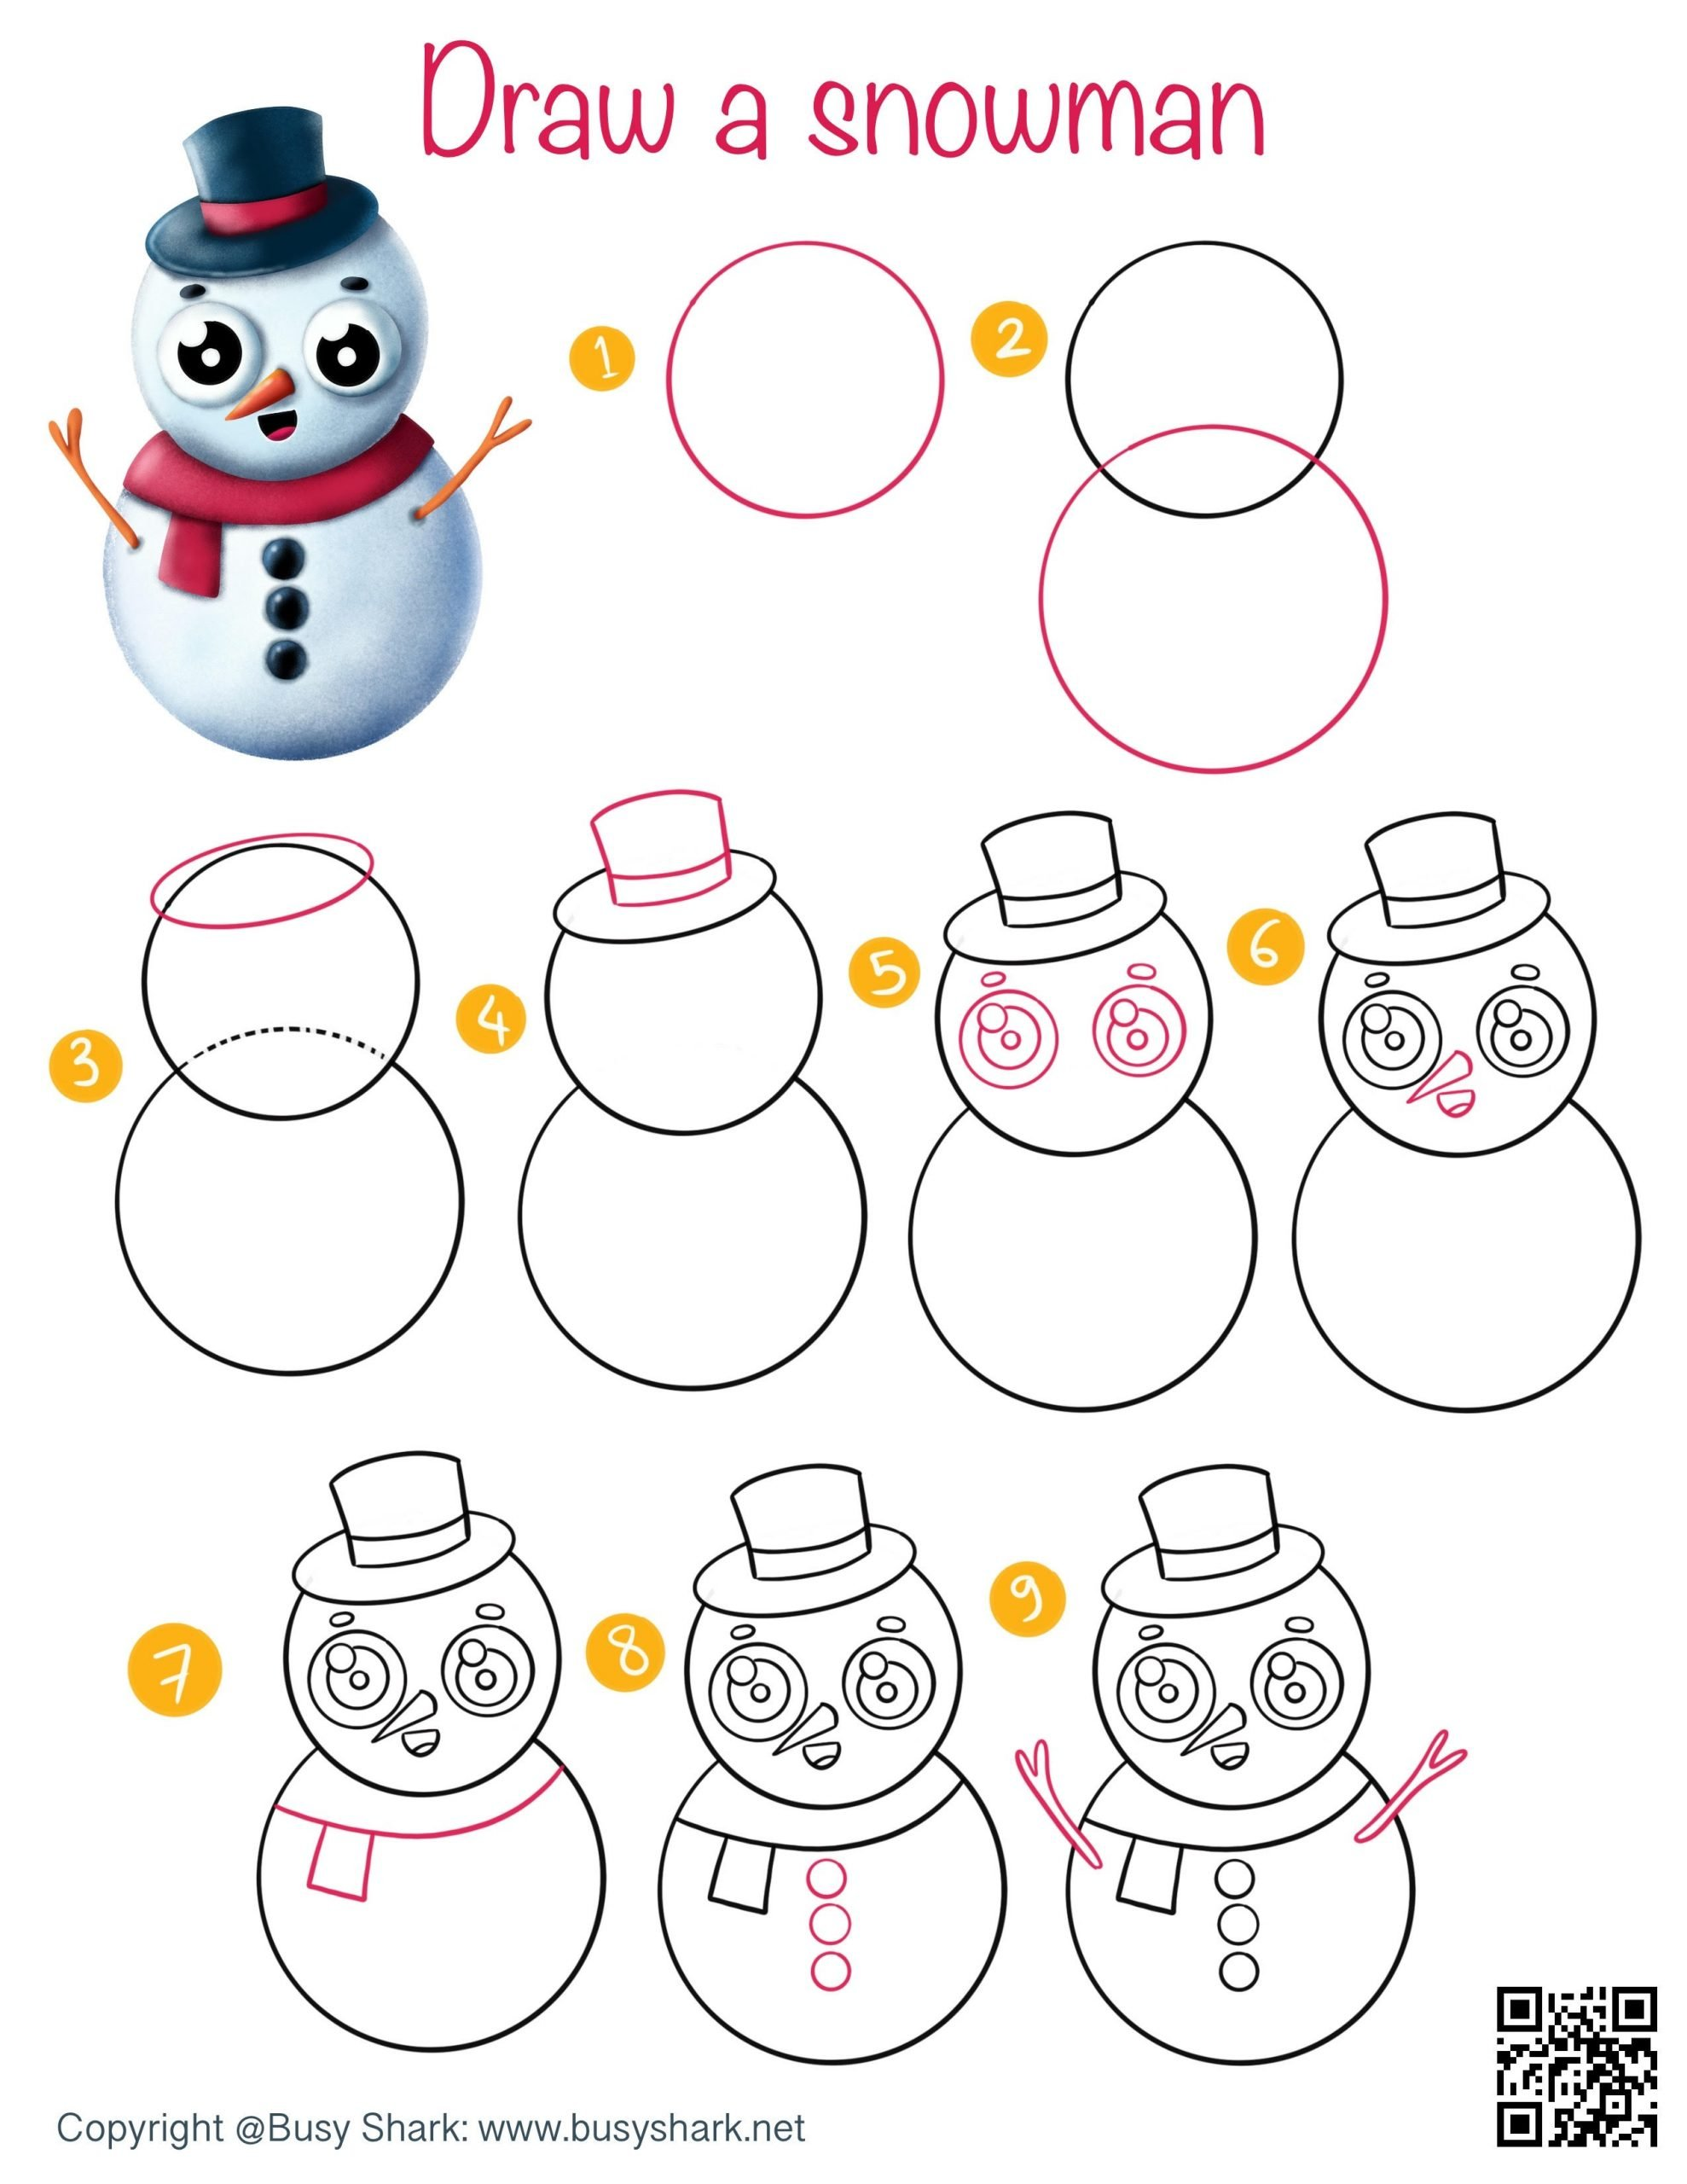 How to draw a snowman step by step easy drawing tutorial